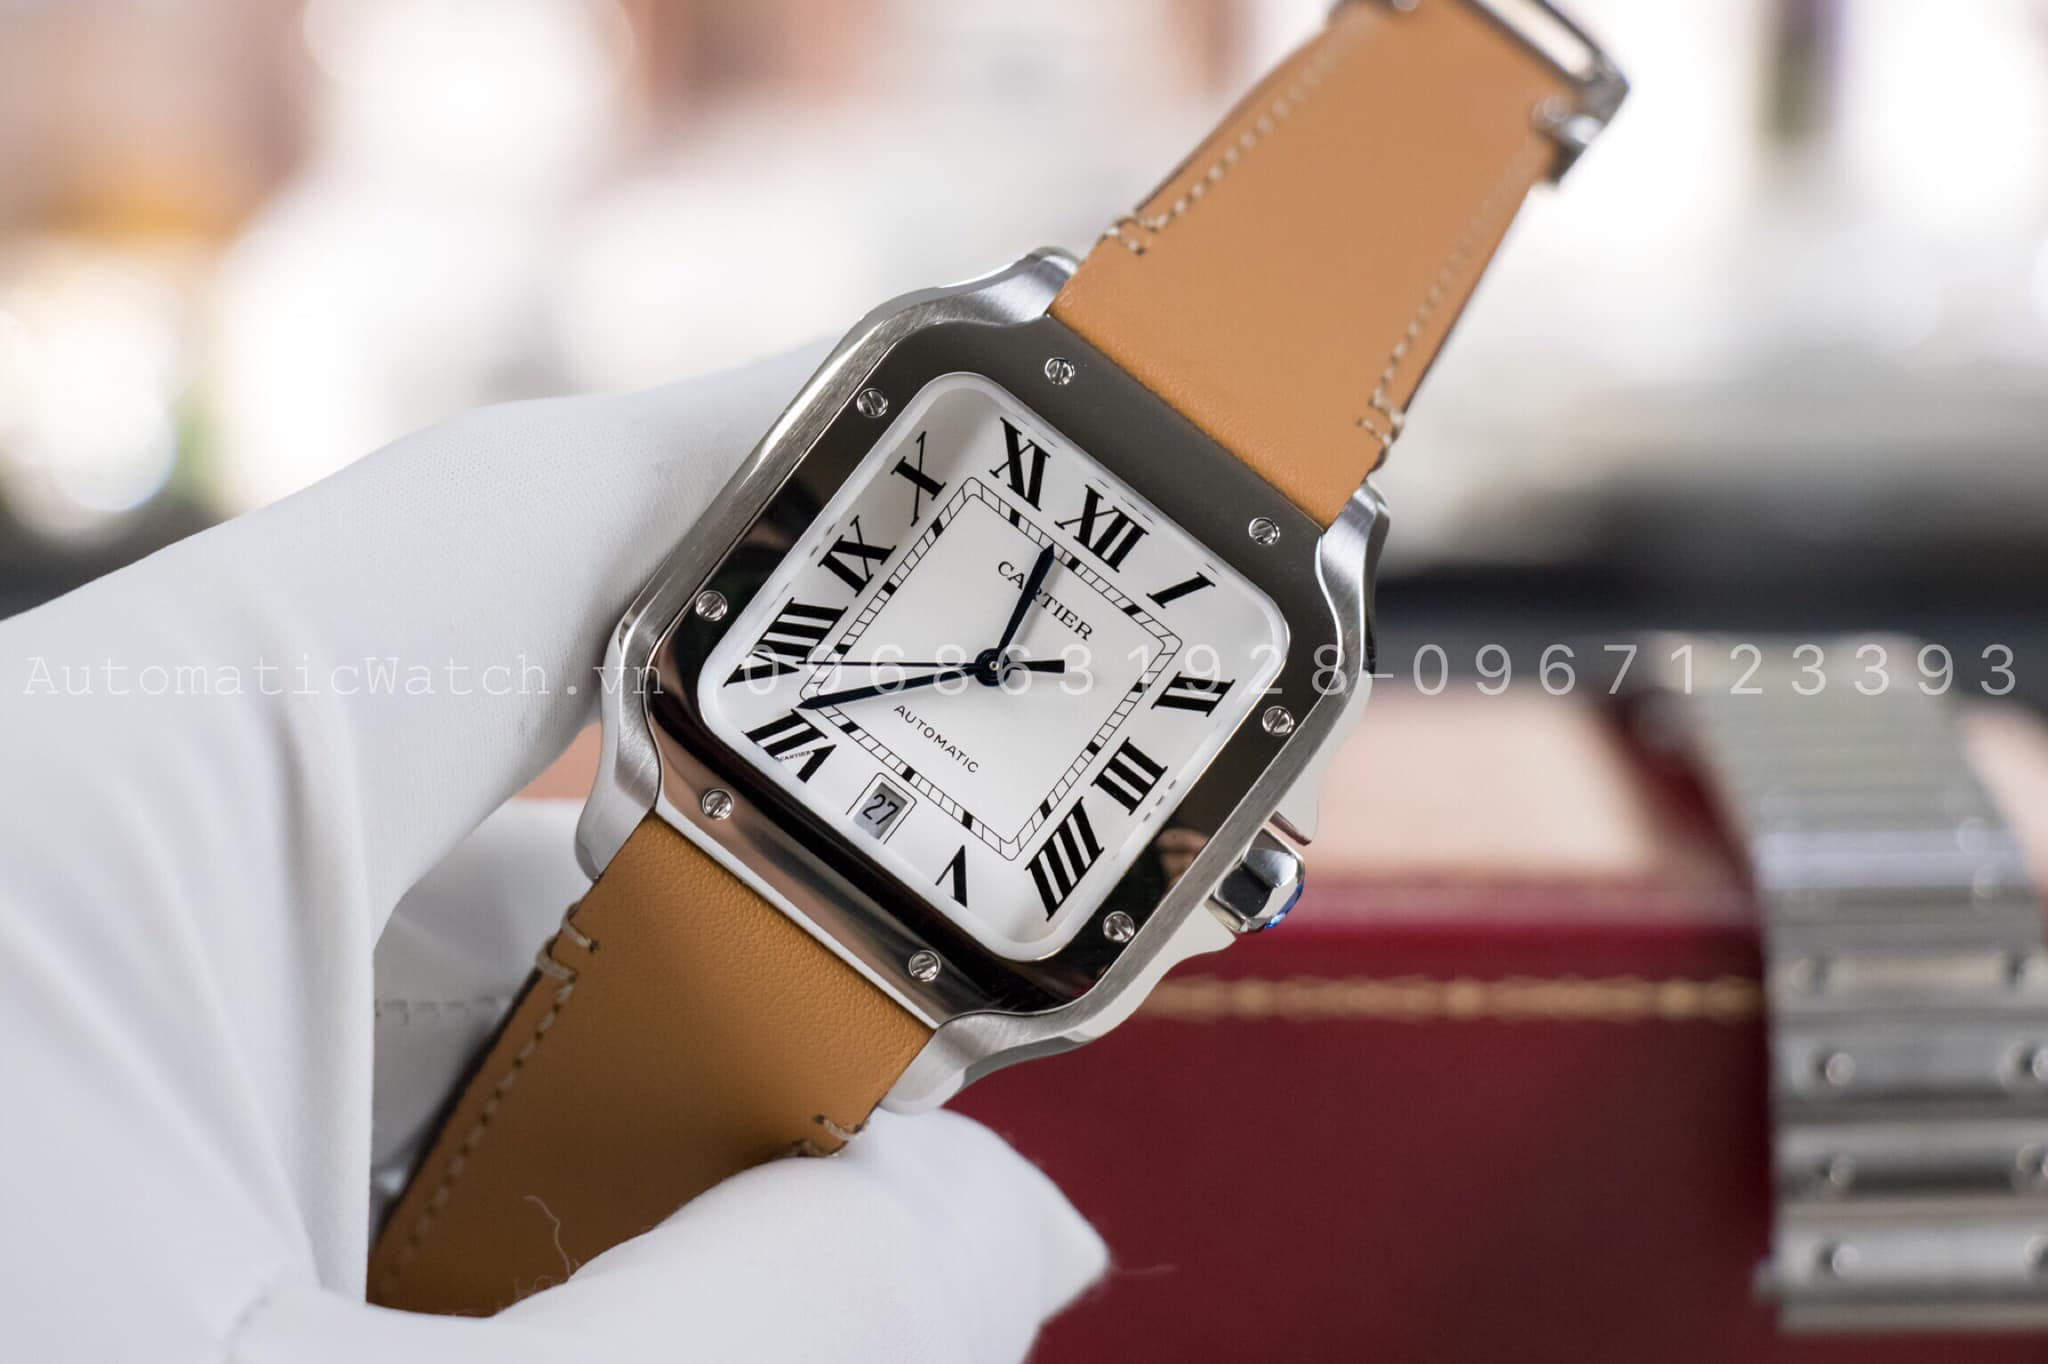 Đồng Hồ Cartier Replica Santos De Large Automatic 39,8mm